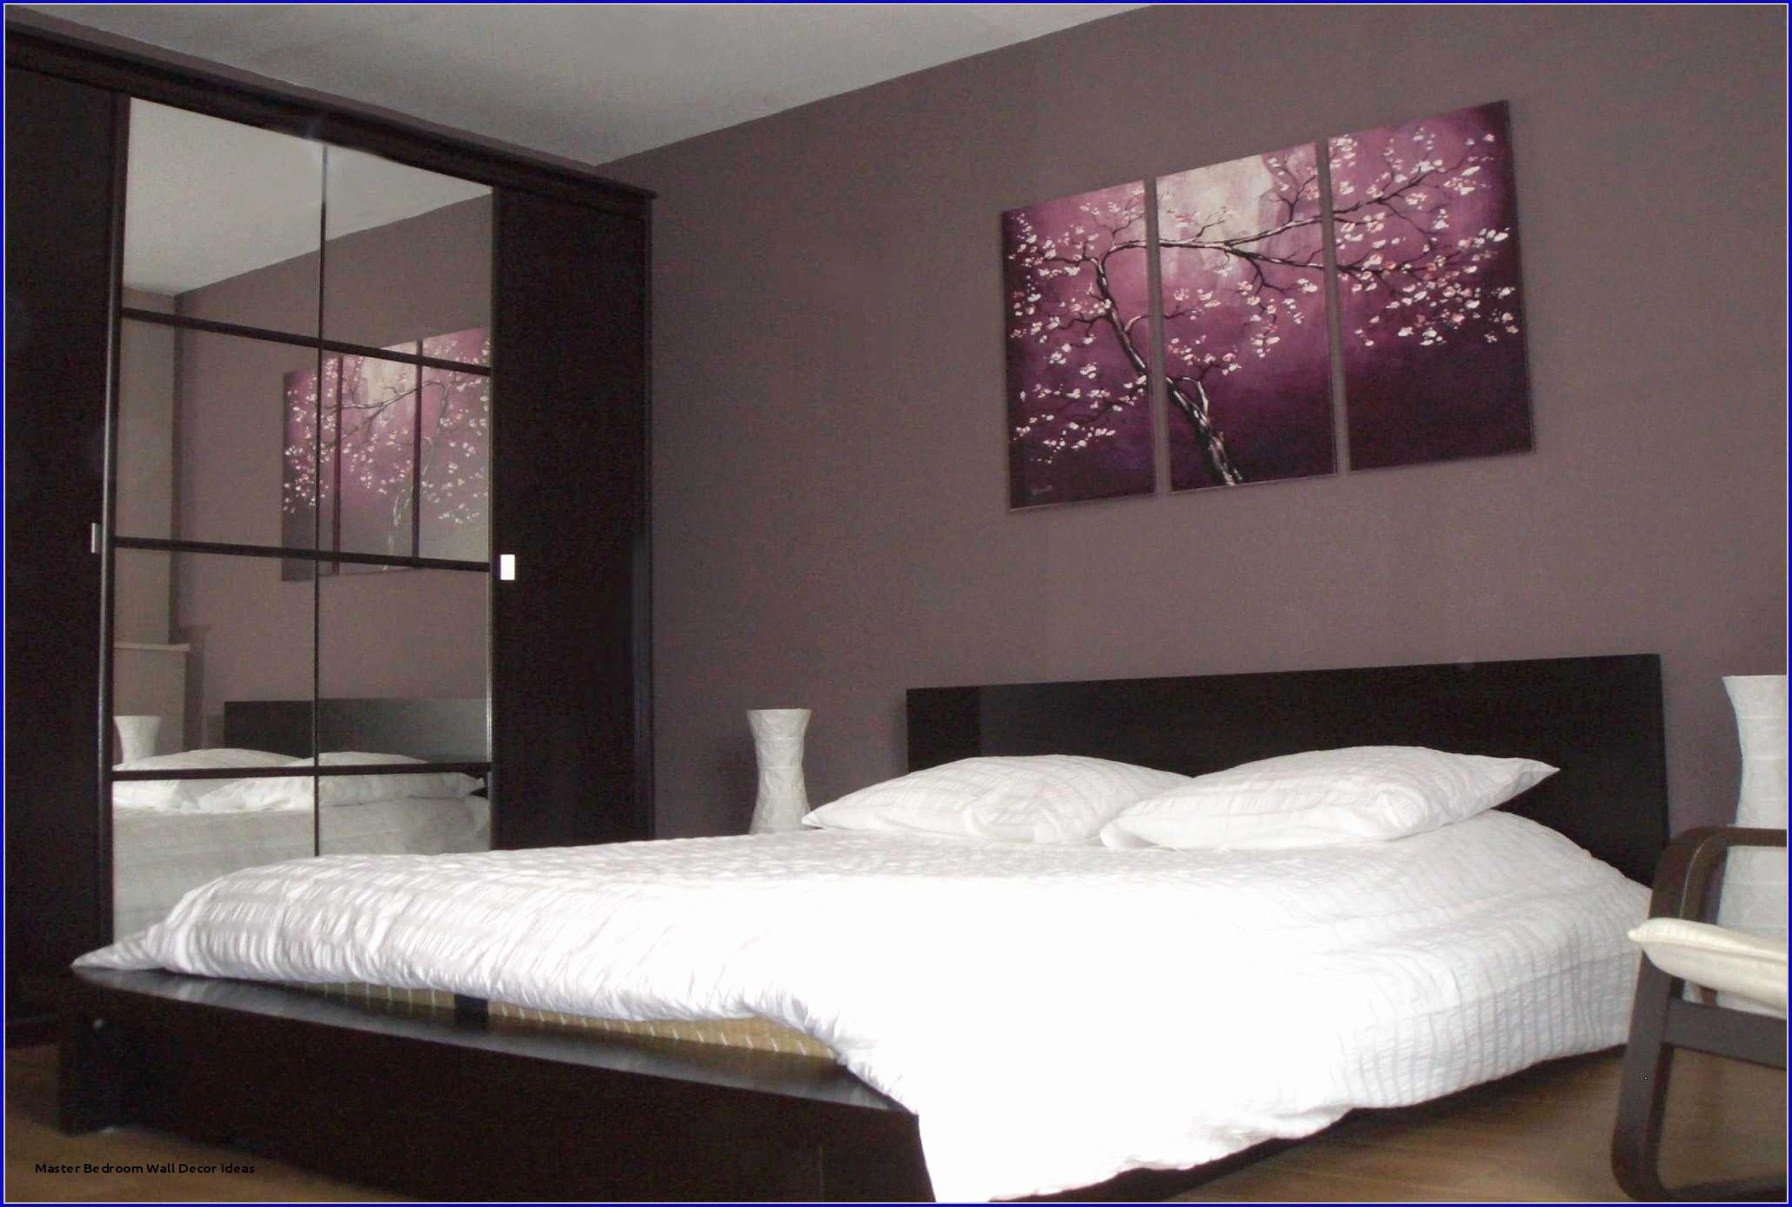 Wall Murals for Bedroom Awesome Diy Wall Decor Ideas Bedroom Wall Art Ideas Lovely Wall